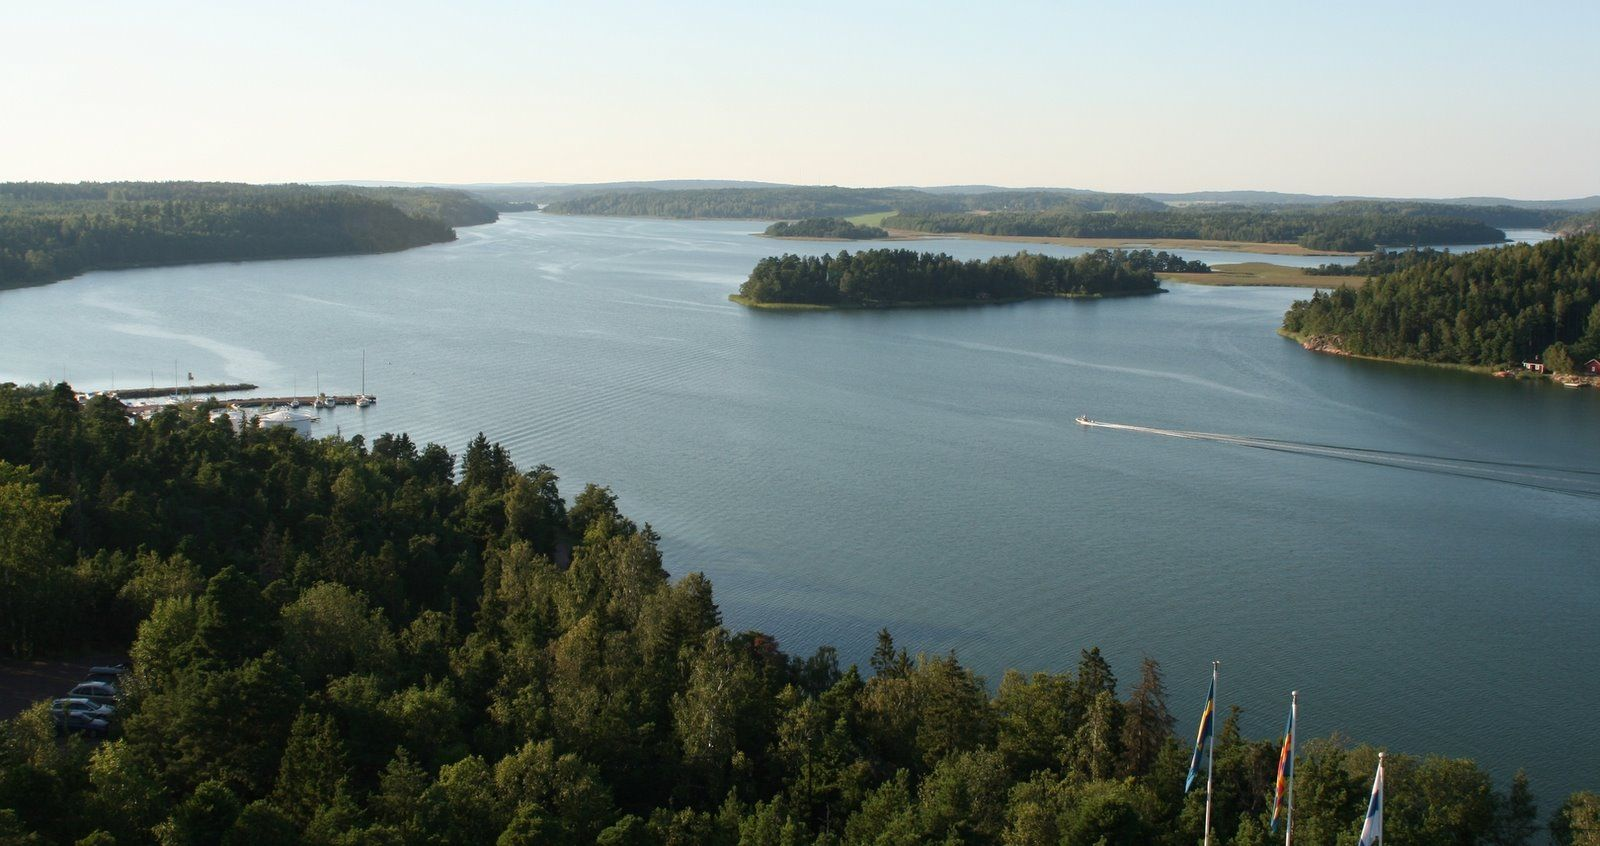 The municipality has a population of 2,538  of which 93.8% speak Swedish and 3.4% Finnish as their first language.The municipality covers an area of 172.48 square kilometres of which 49.23 km2 is water.The population density is 20.59 inhabitants per square kilometre  The municipality is unilingually Swedish.